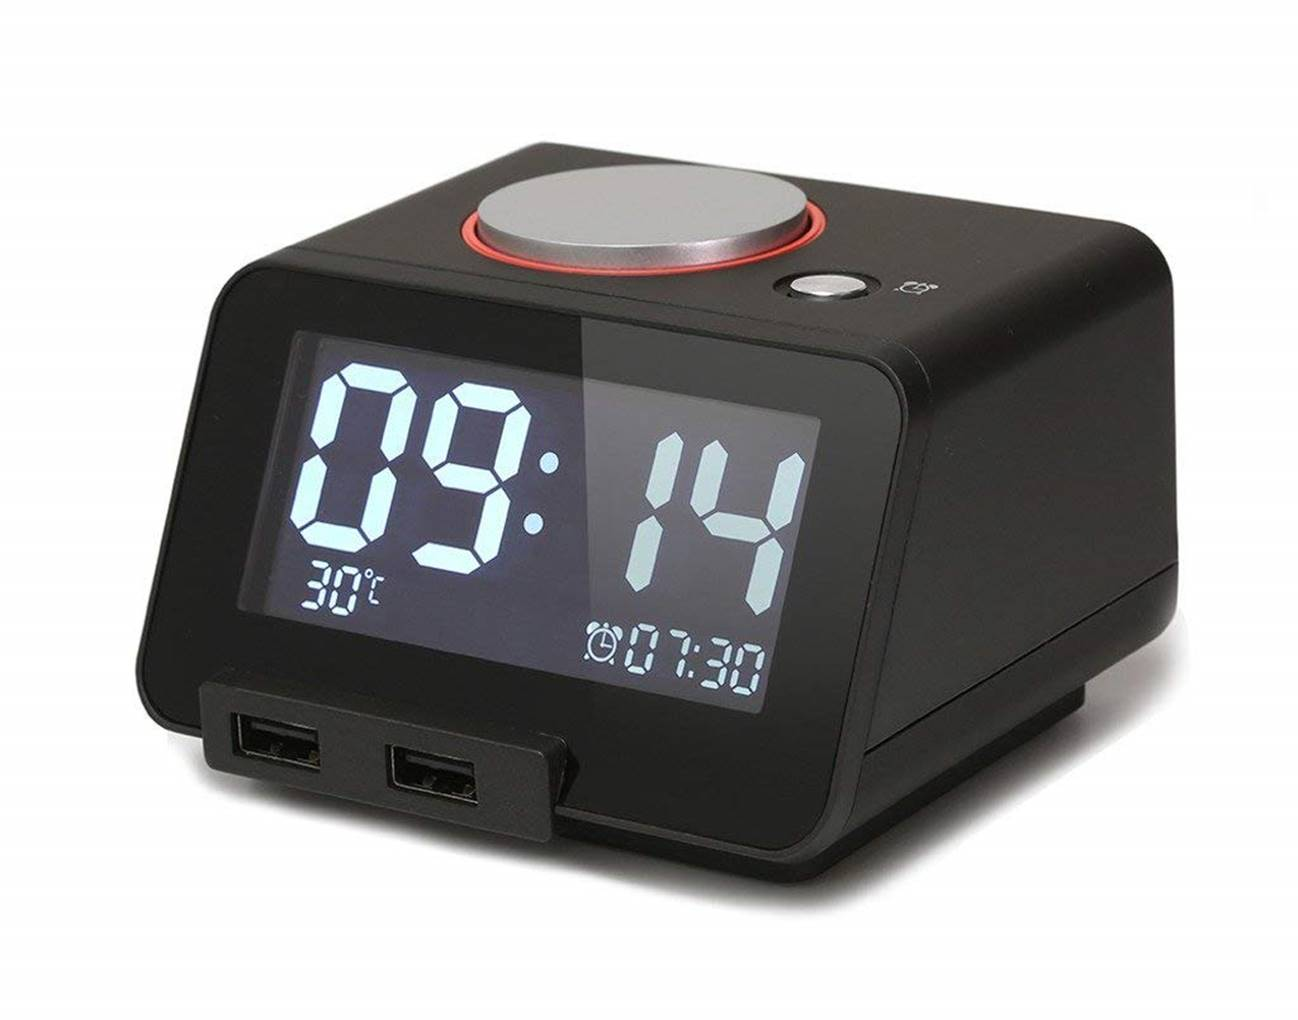 Homtime C1 Multi-Function Loud Alarm Clock